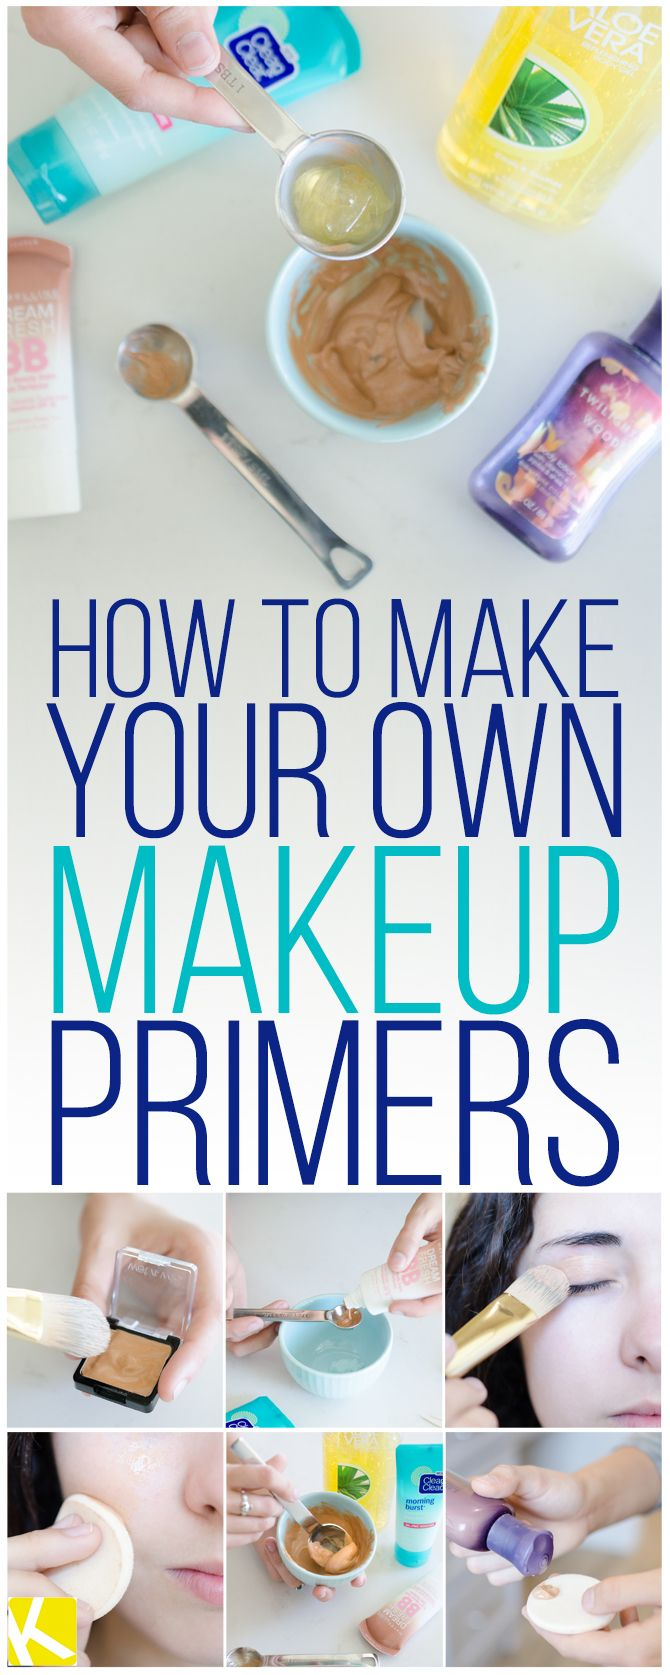 How to Make Your Own Makeup Primers